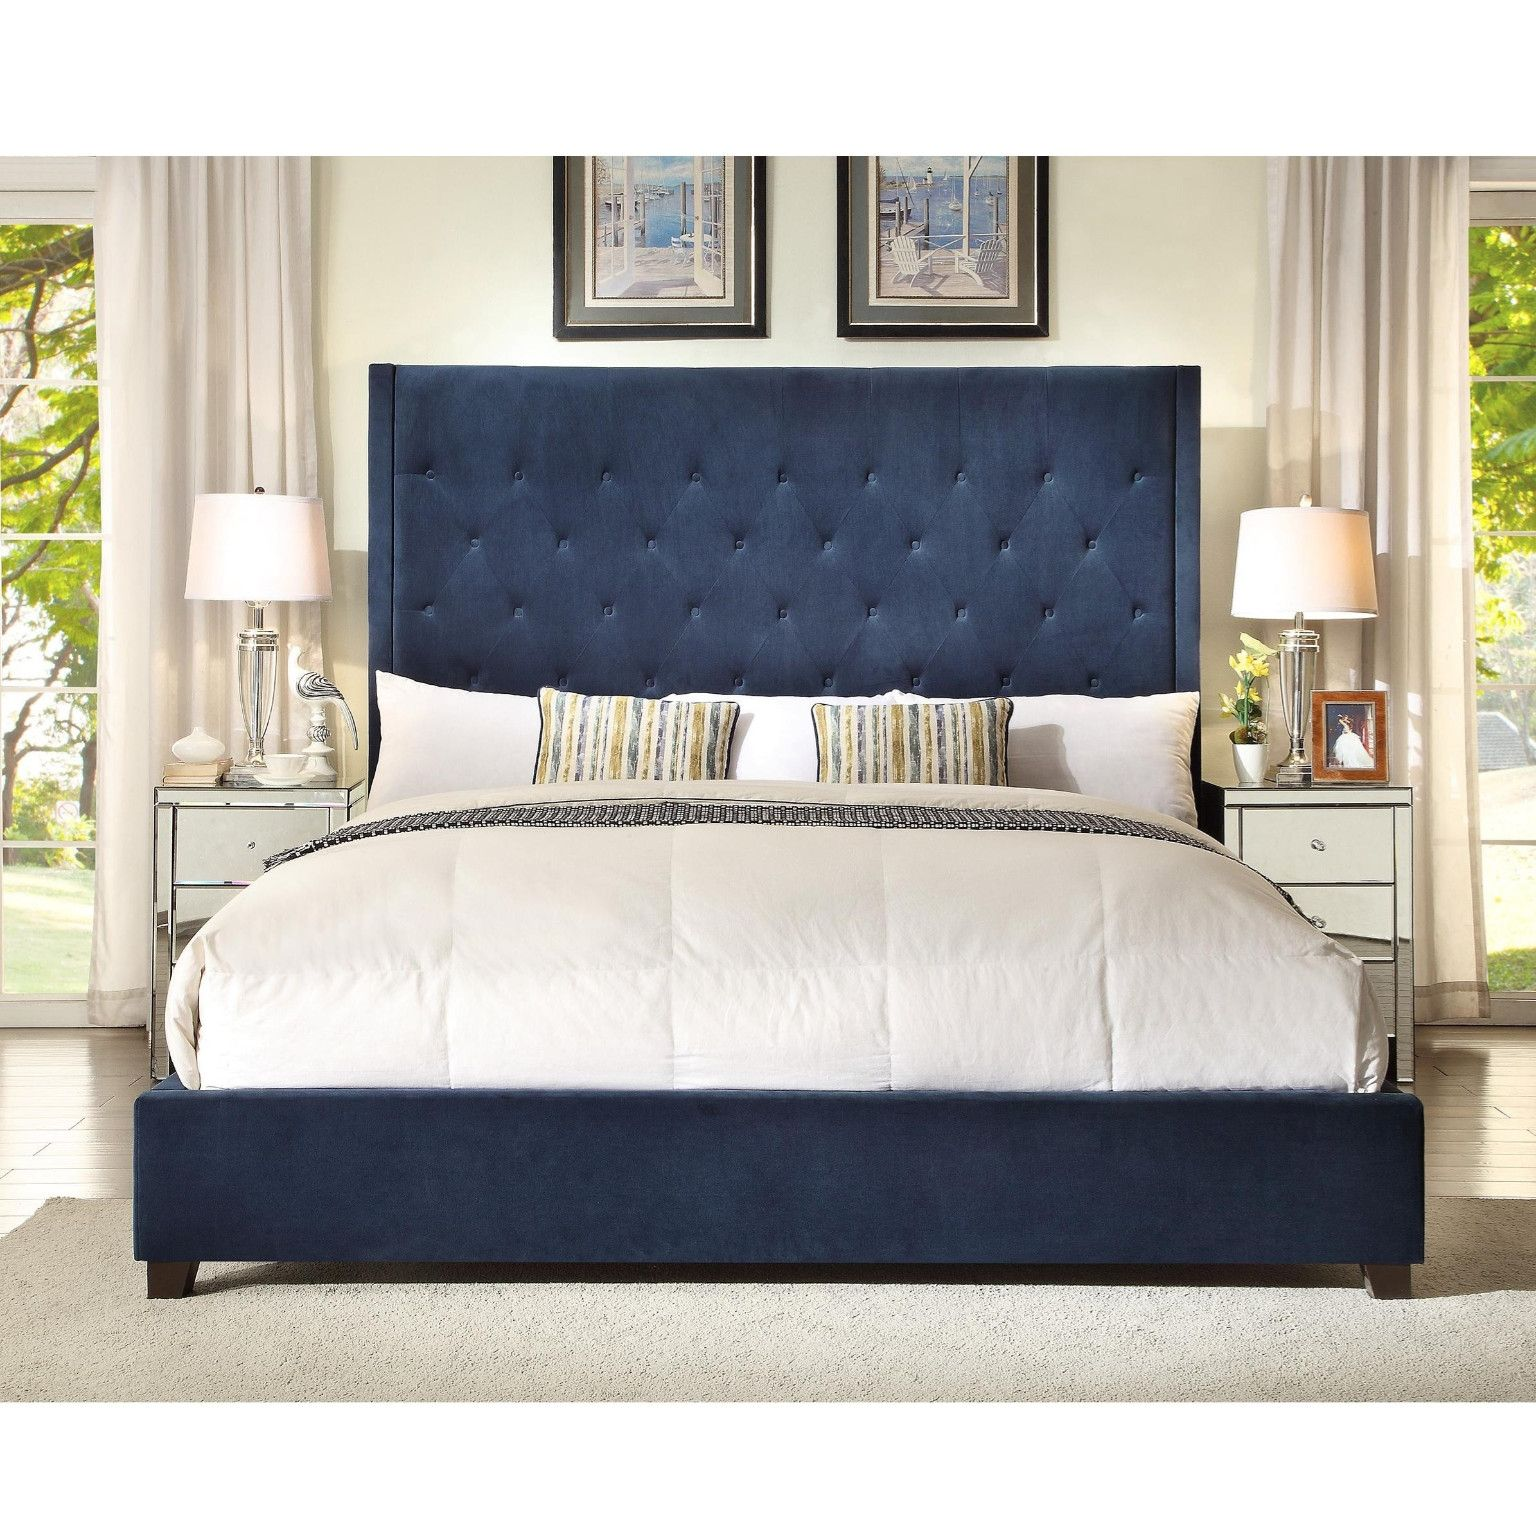 Pin On Futons Headboards Trundles And Day Beds